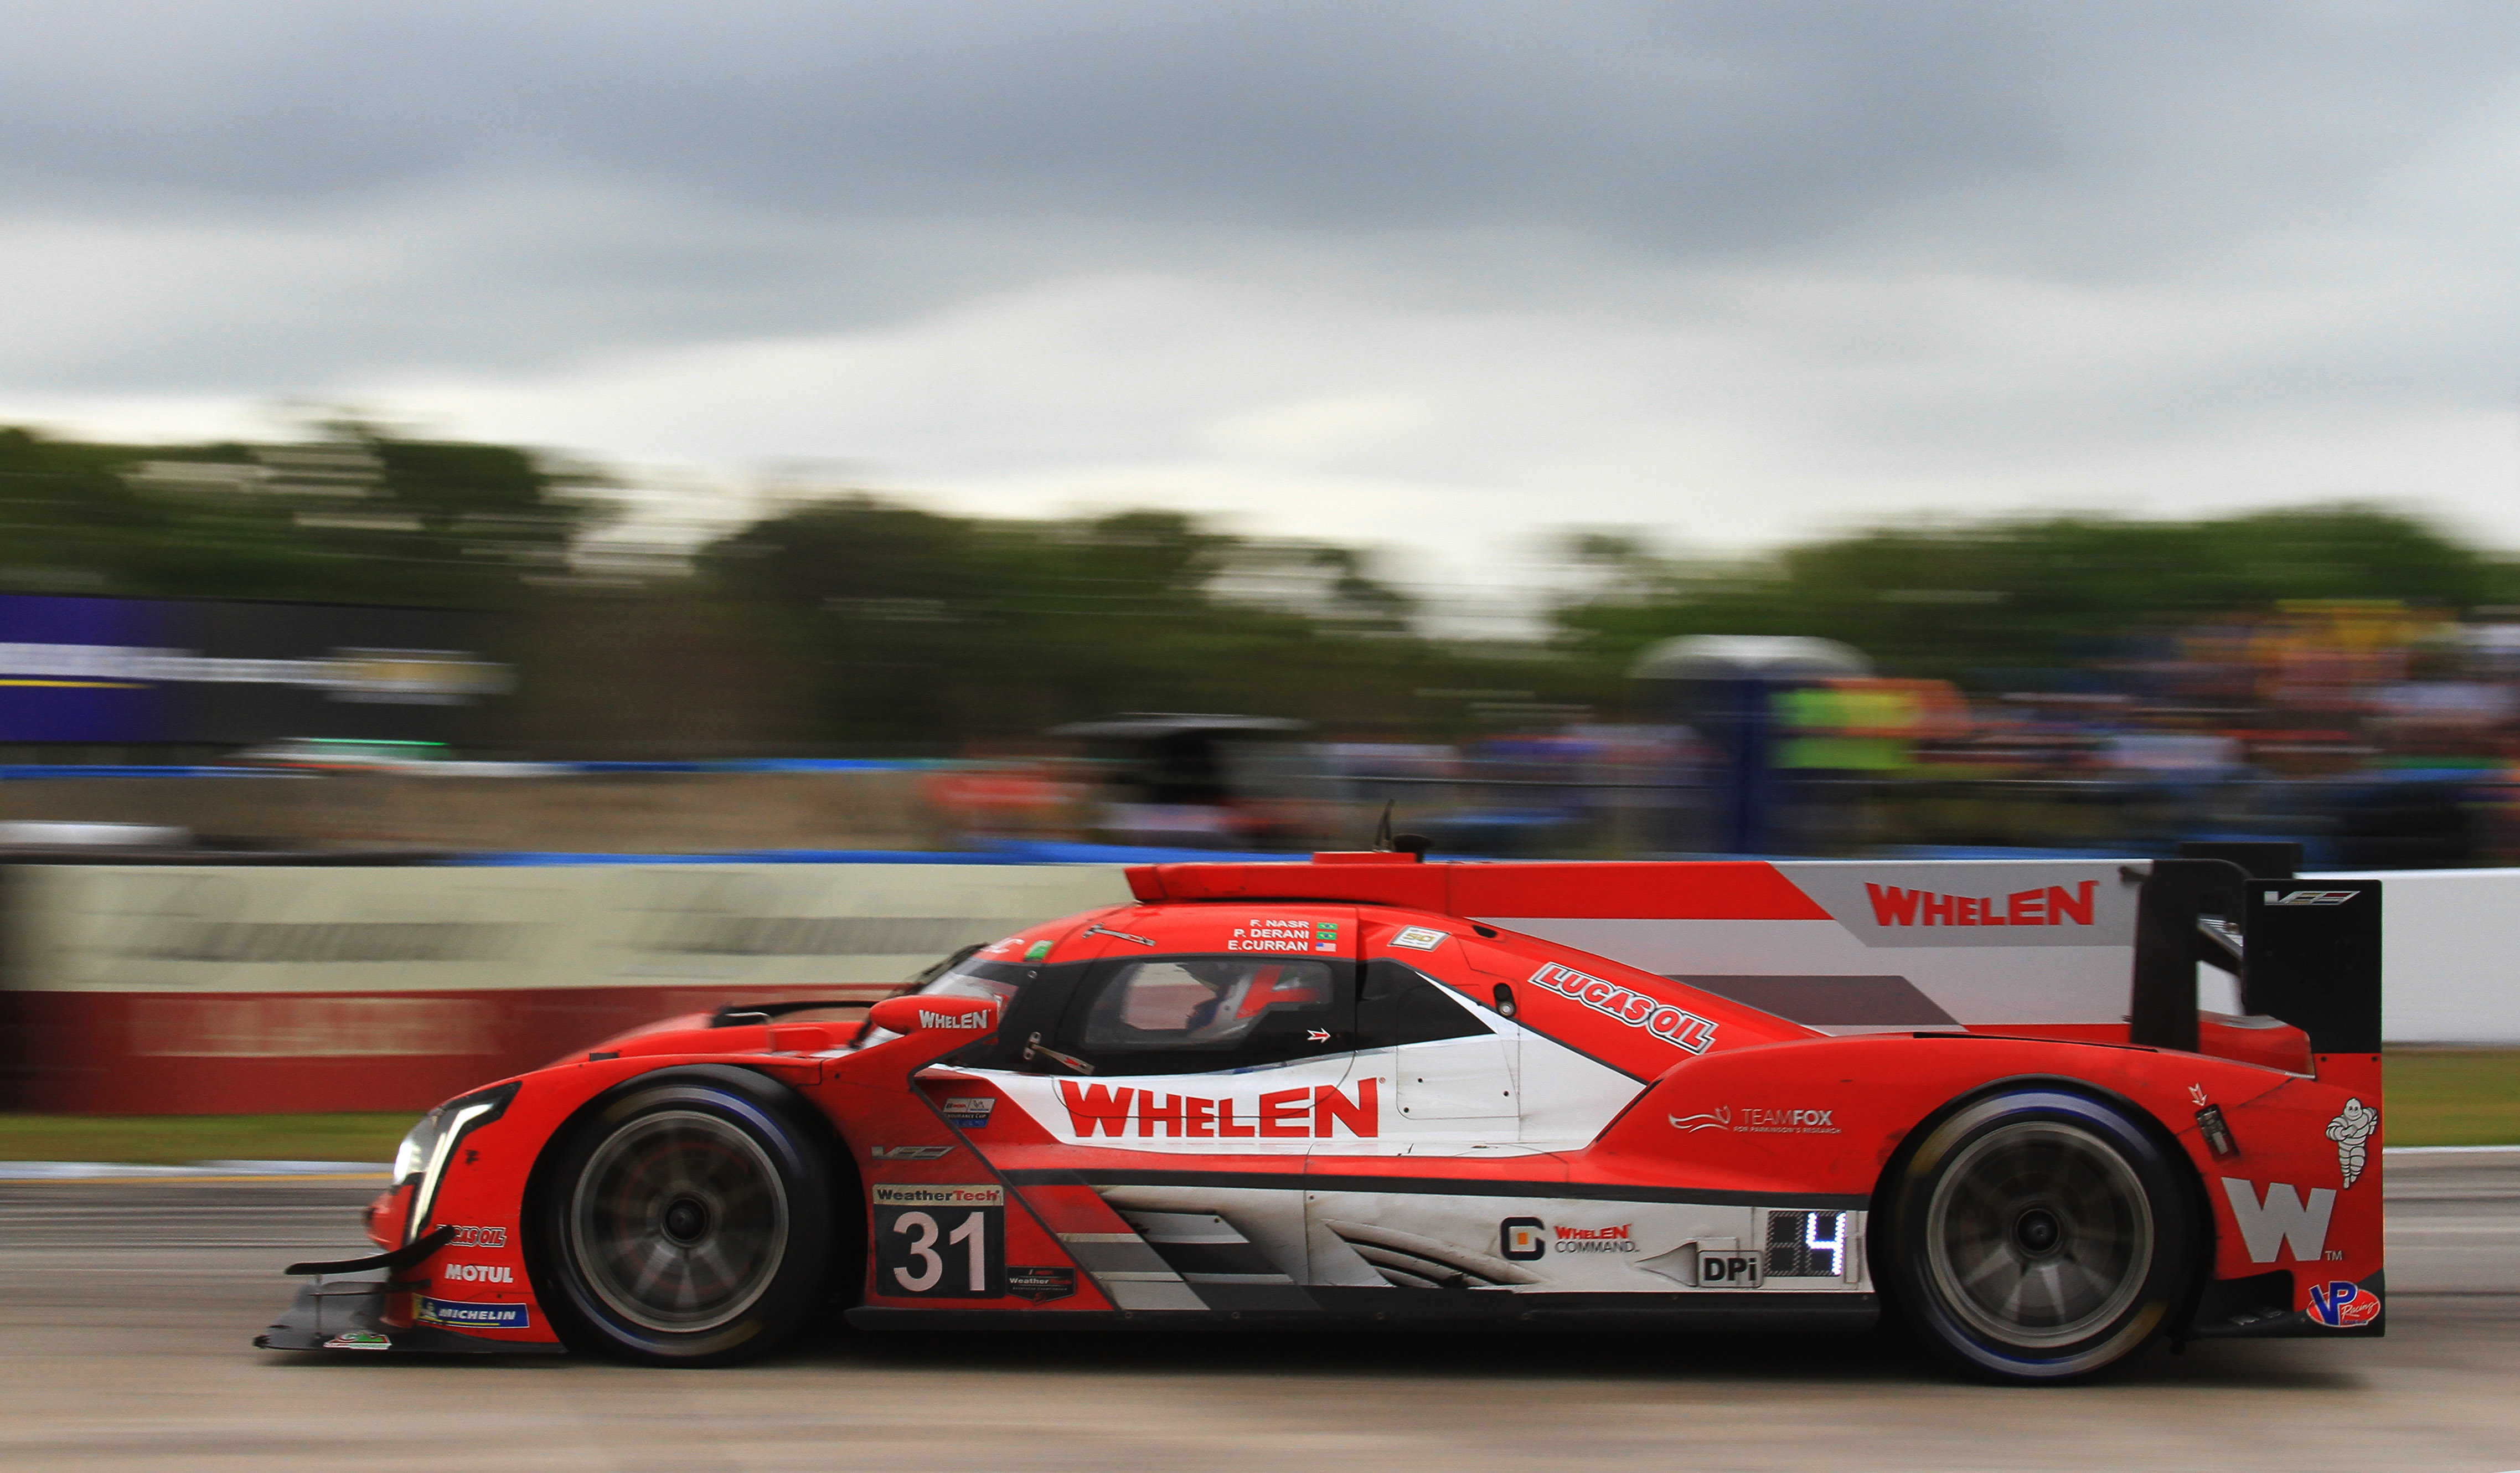 The Whelen Engineering Cadillac was just a little faster than everyone else